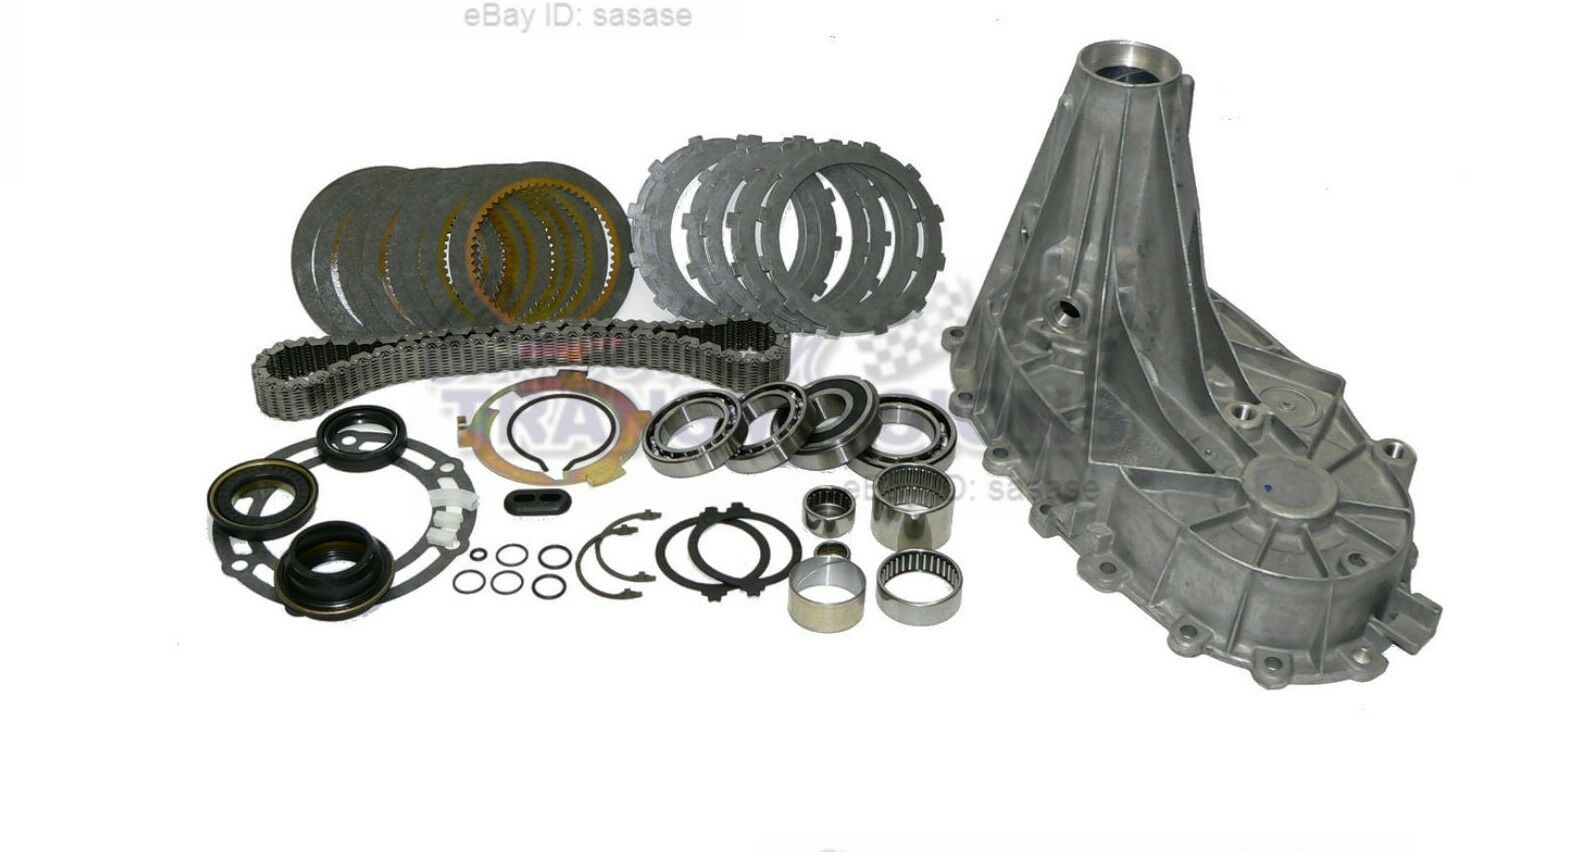 Np246 Transfer Case Rebuild Kit Chain Bearings Clutches Gm 2003 Gmc Identification 1 Of 3 See More